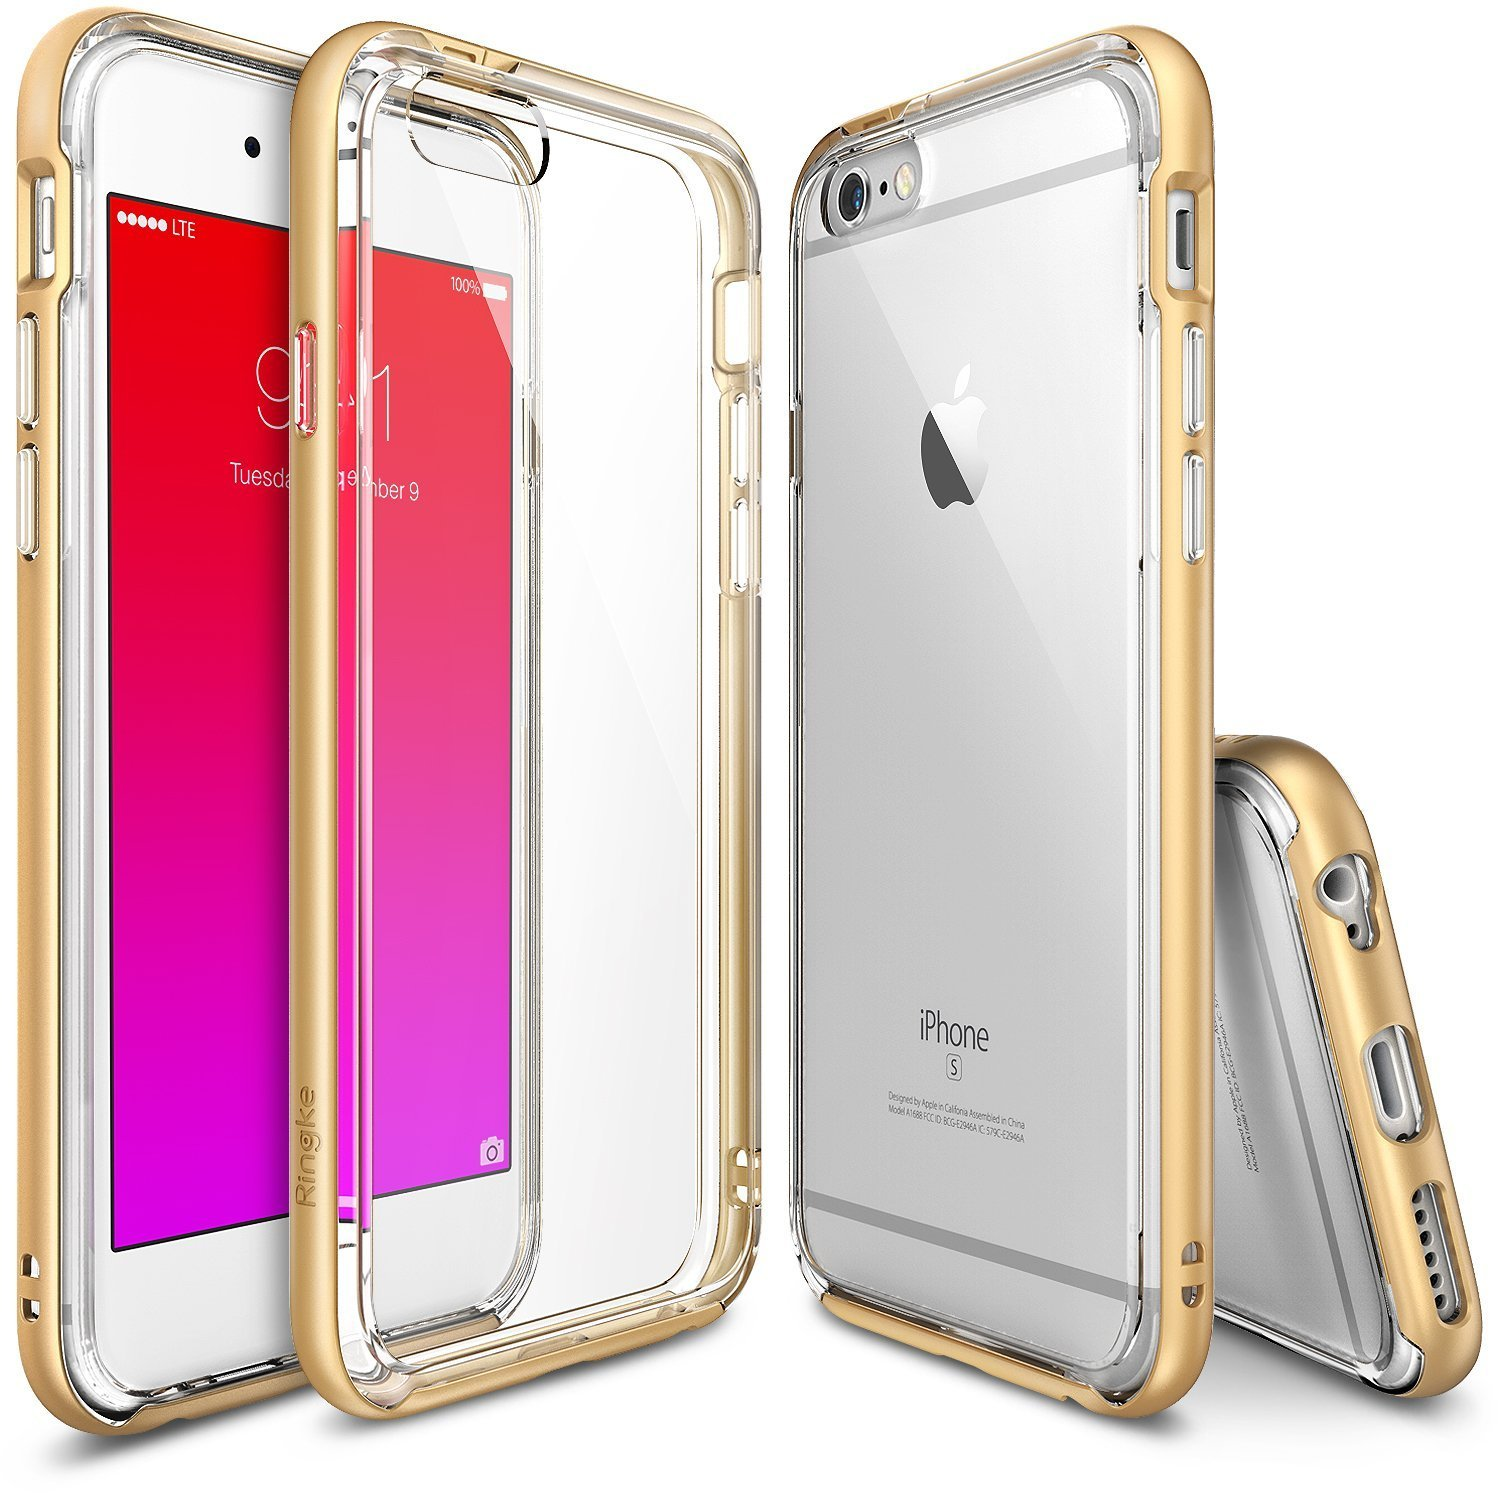 Apple iPhone 6/6S Bumper Case, Ringke [Gold] FRAME Drop Protection Clear Soft Shock Absorption Protection Bumper Case